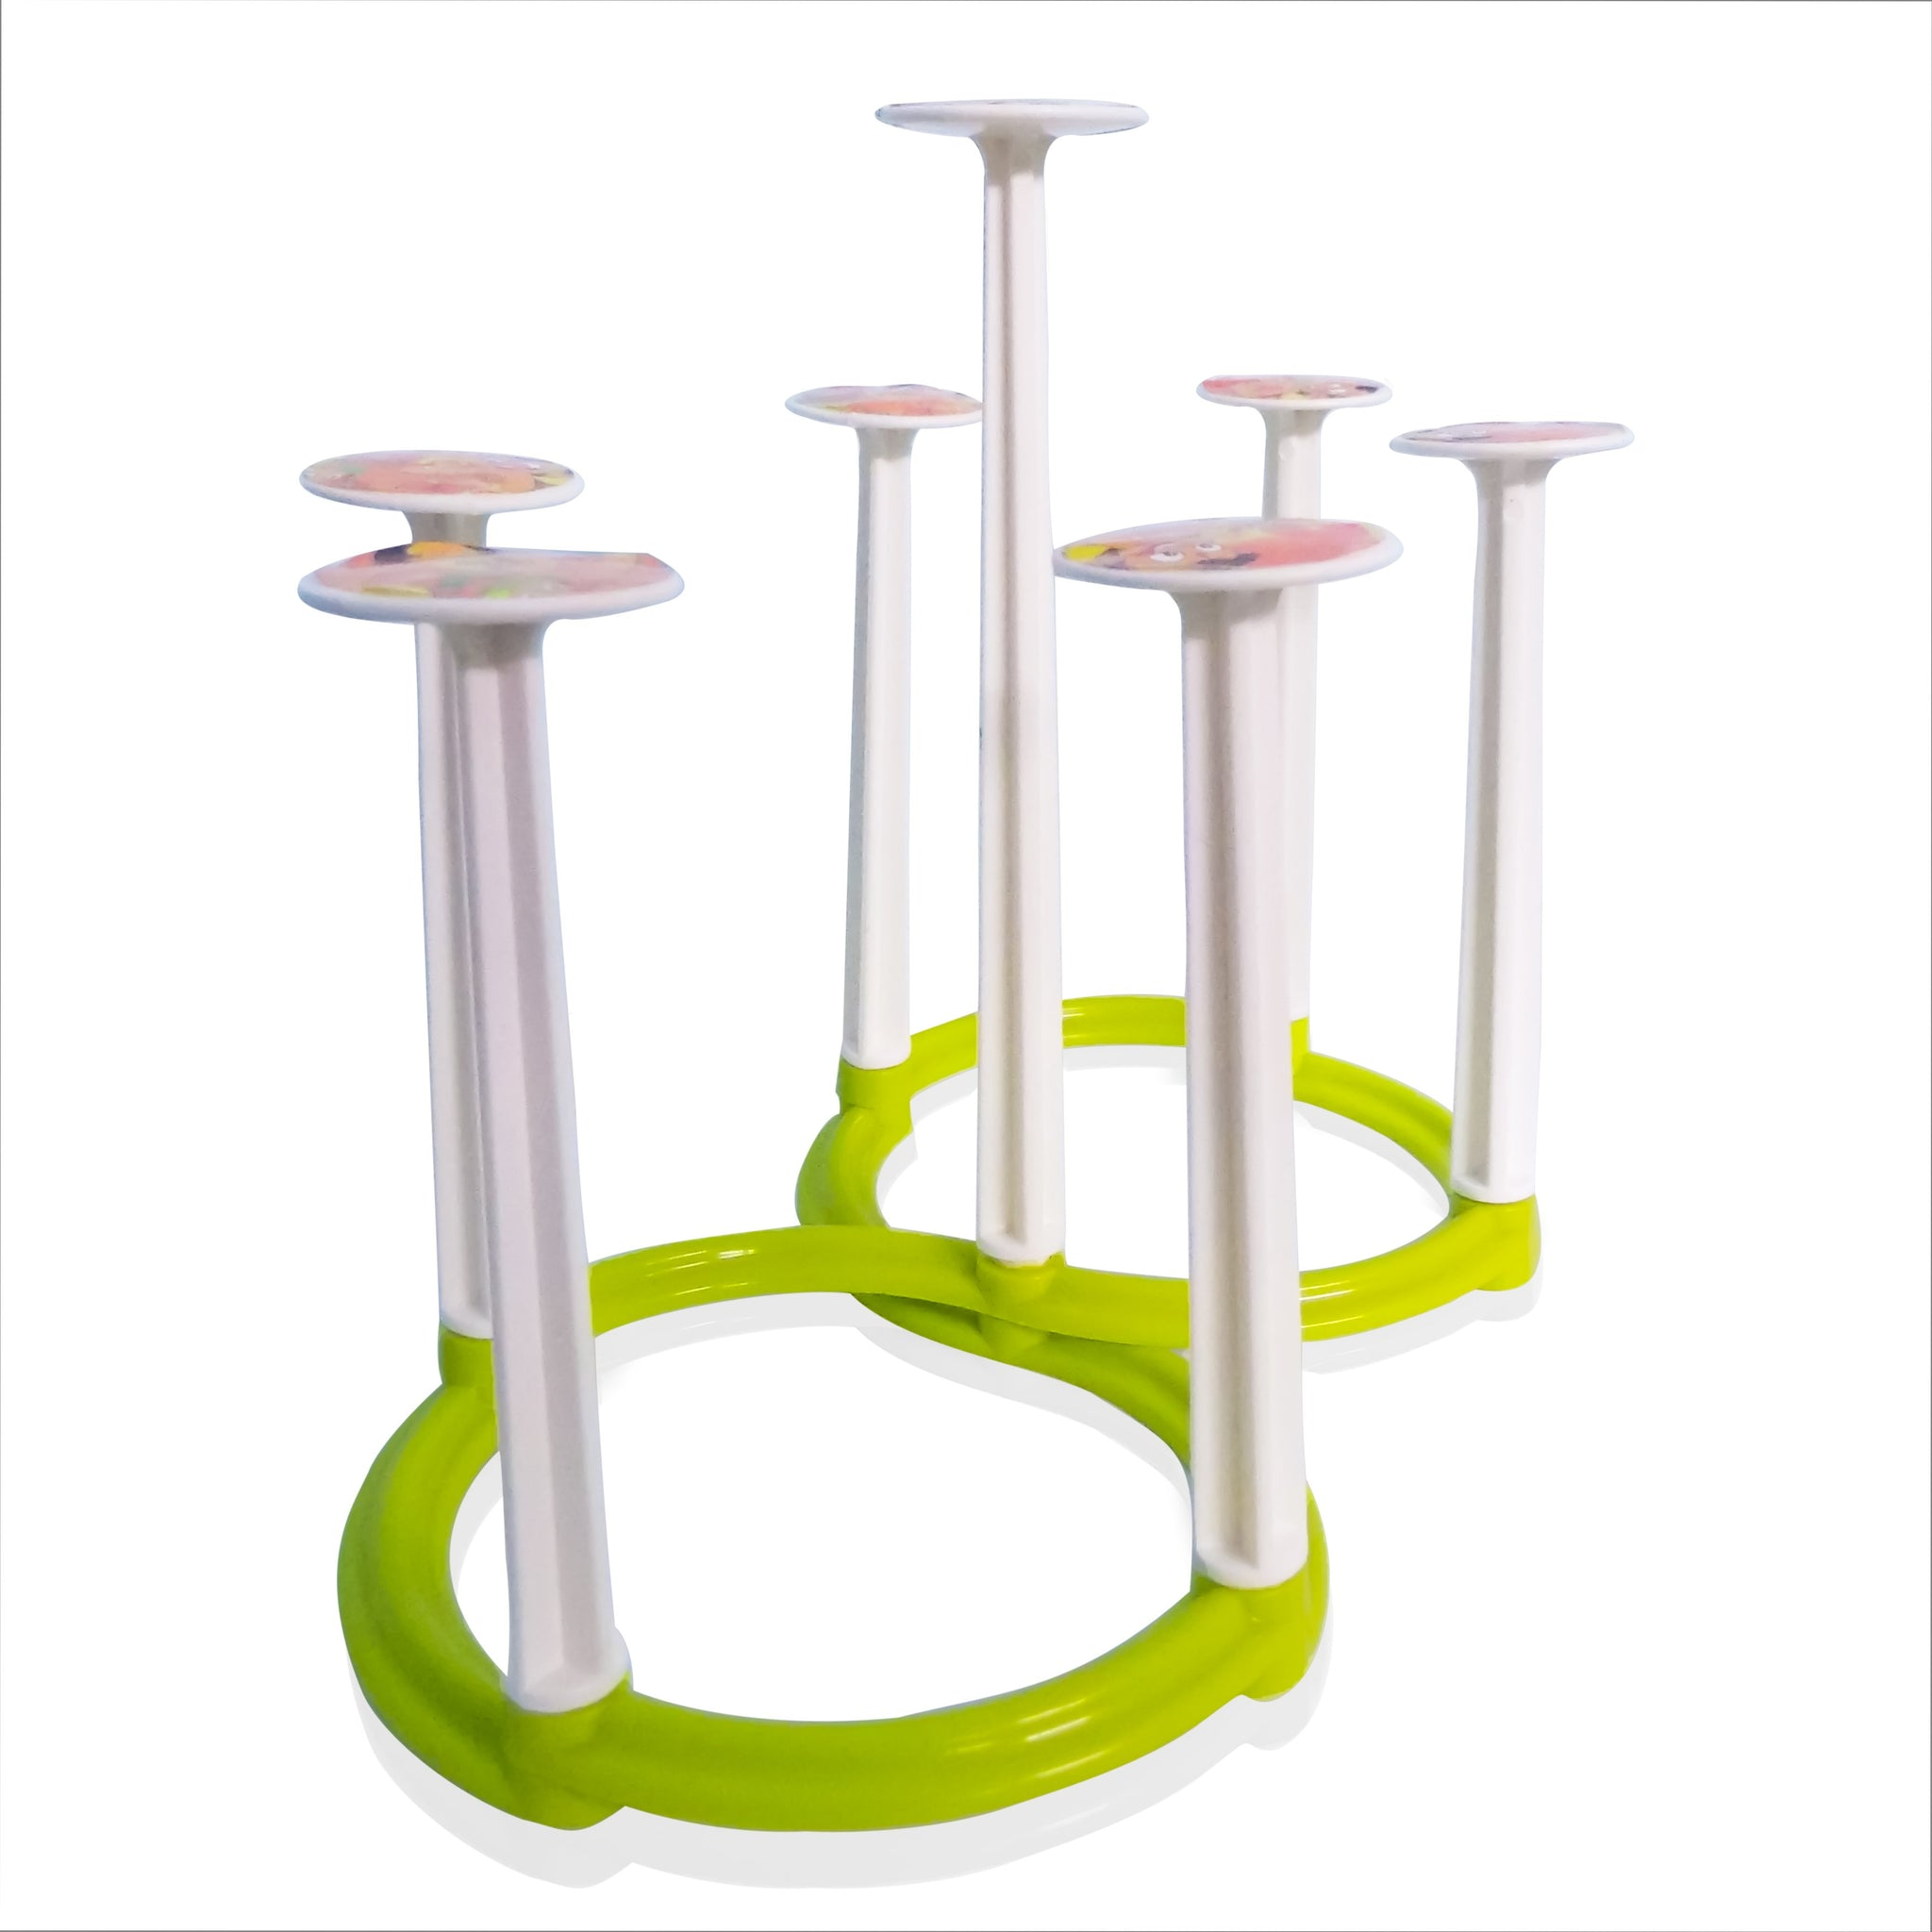 Movable Folding Design Glass Stand/Holder for 6 Glasses